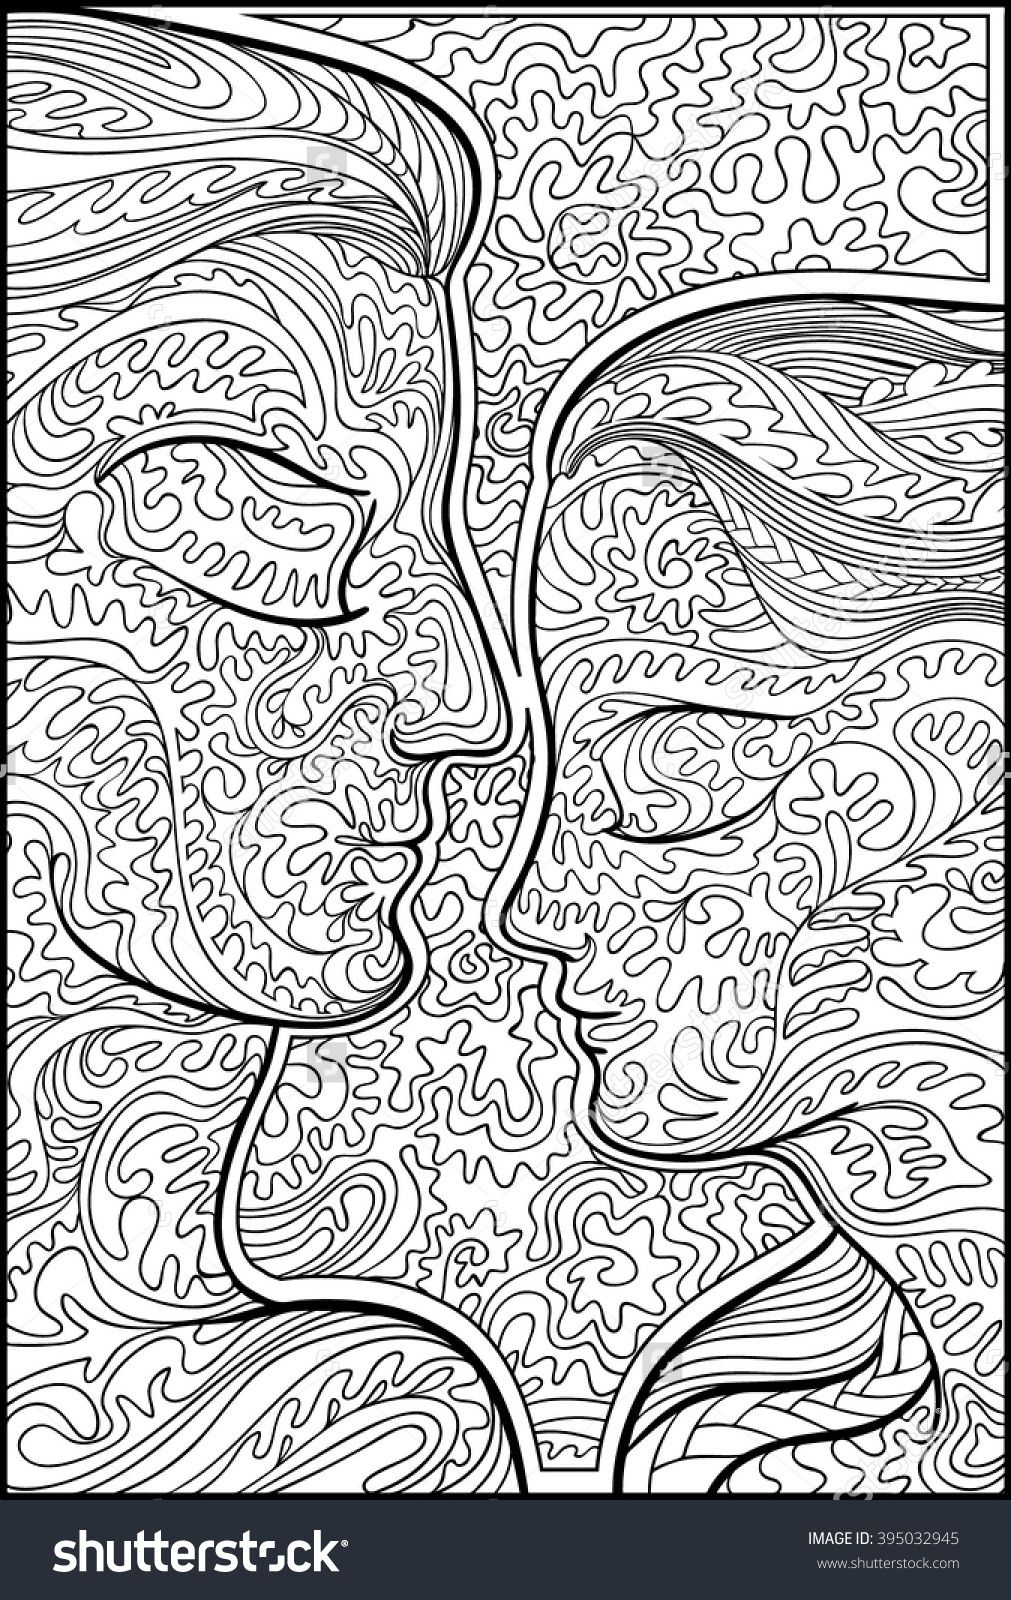 Man and woman coloring for adults shutterstock 395032945